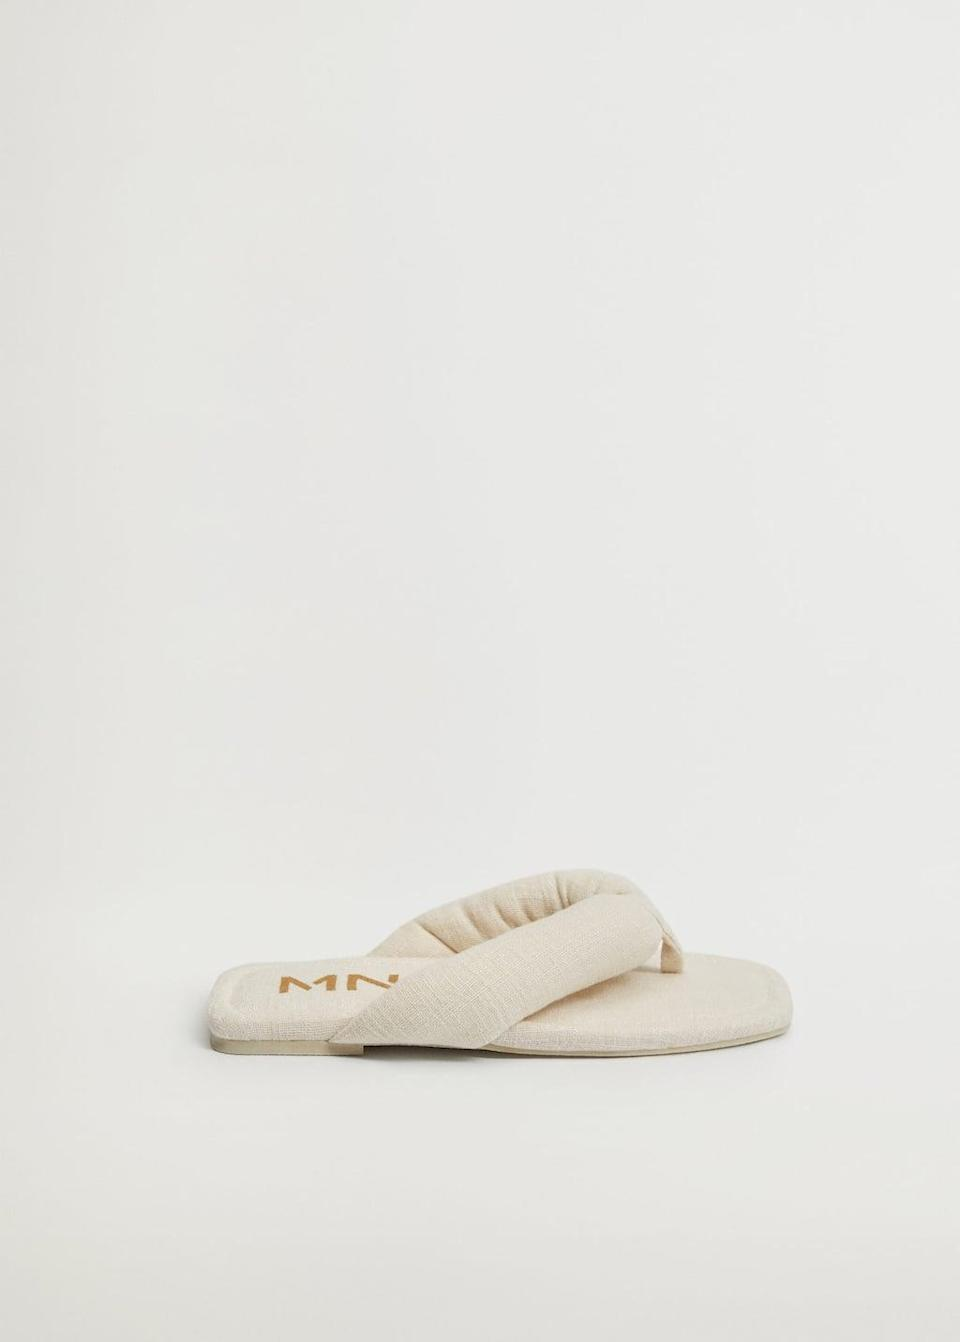 <p>Join the square-toe sandal movement without sacrificing comfort courtesy of these <span>Mango Quilted Cotton Sandals</span> ($40).</p>